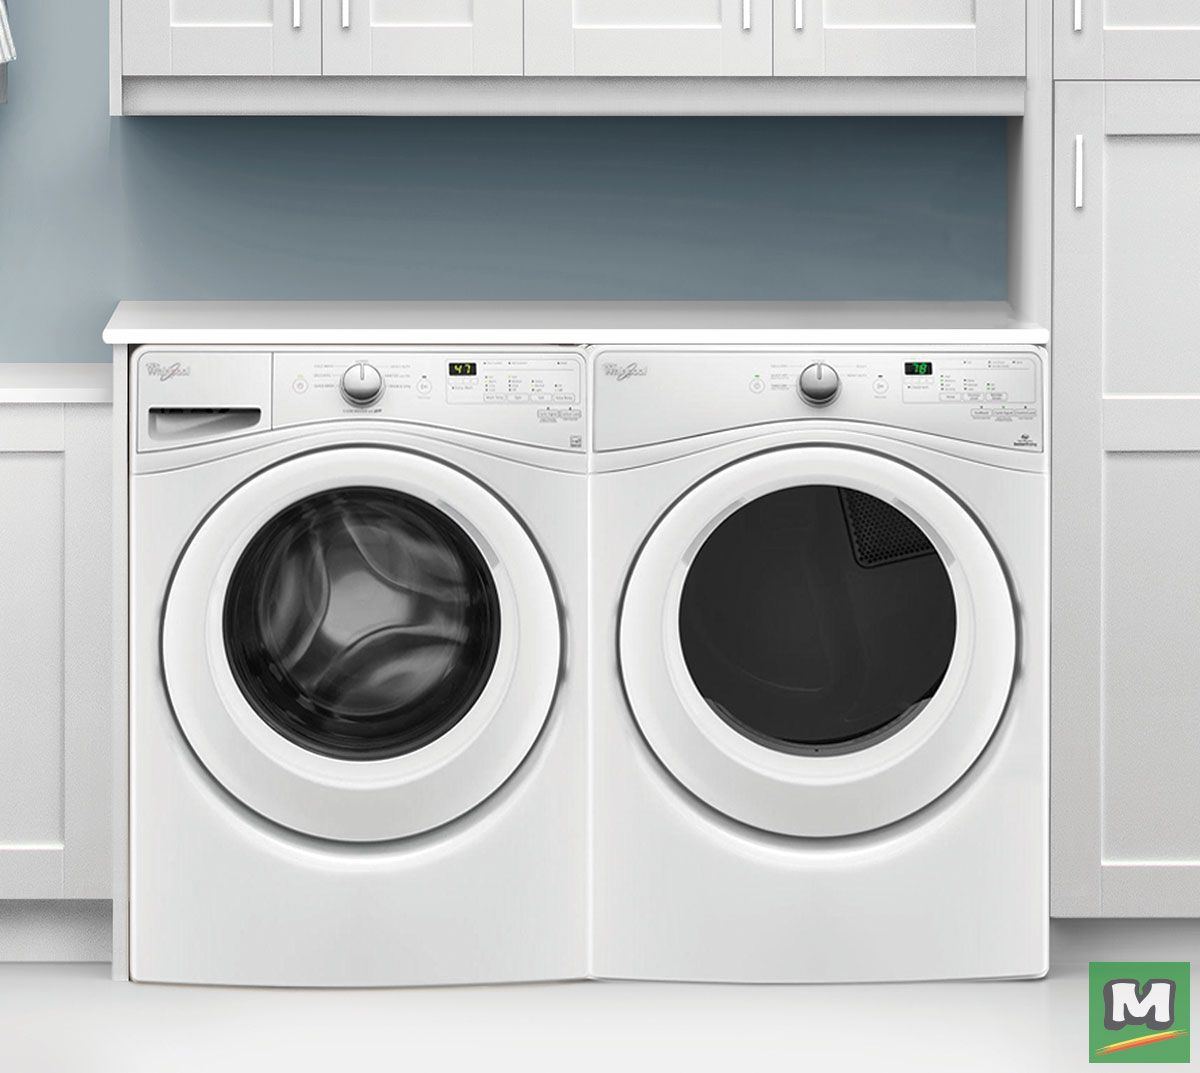 Upgrade To A Whirlpool Washer And Dryer Your Clothes Will Get The Fabric Care They Deserve While Whirlpool Washer And Dryer Whirlpool Washer Best Appliances